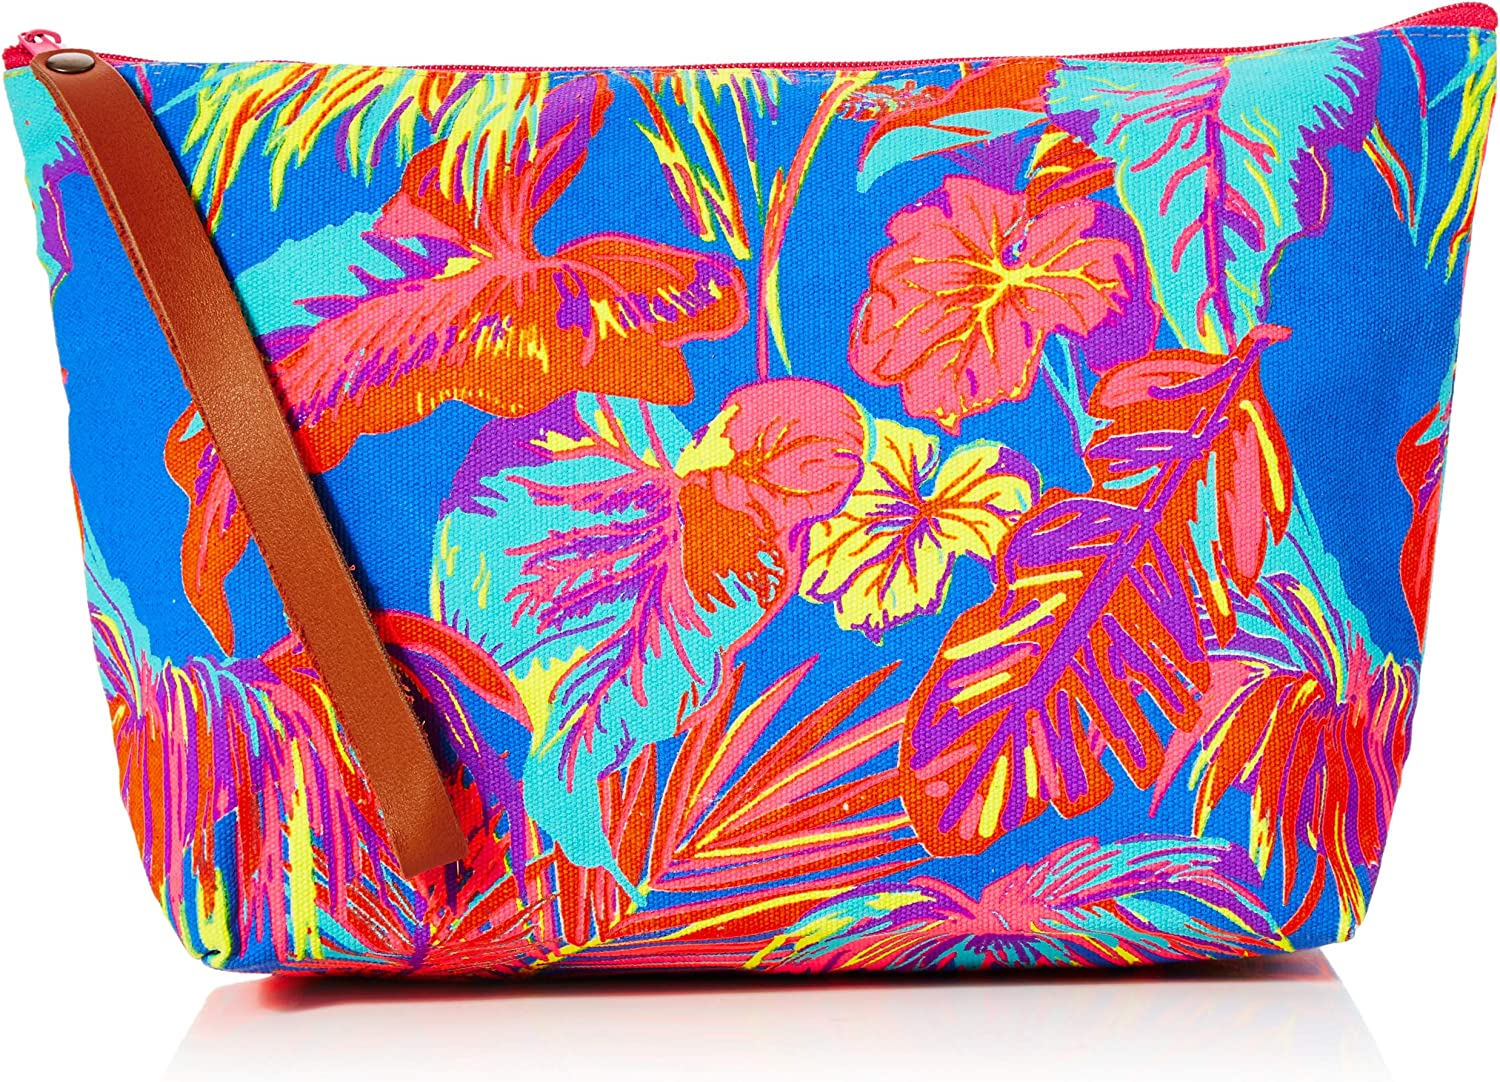 The Holiday Shop London Canvas Clutch Bag Tropical